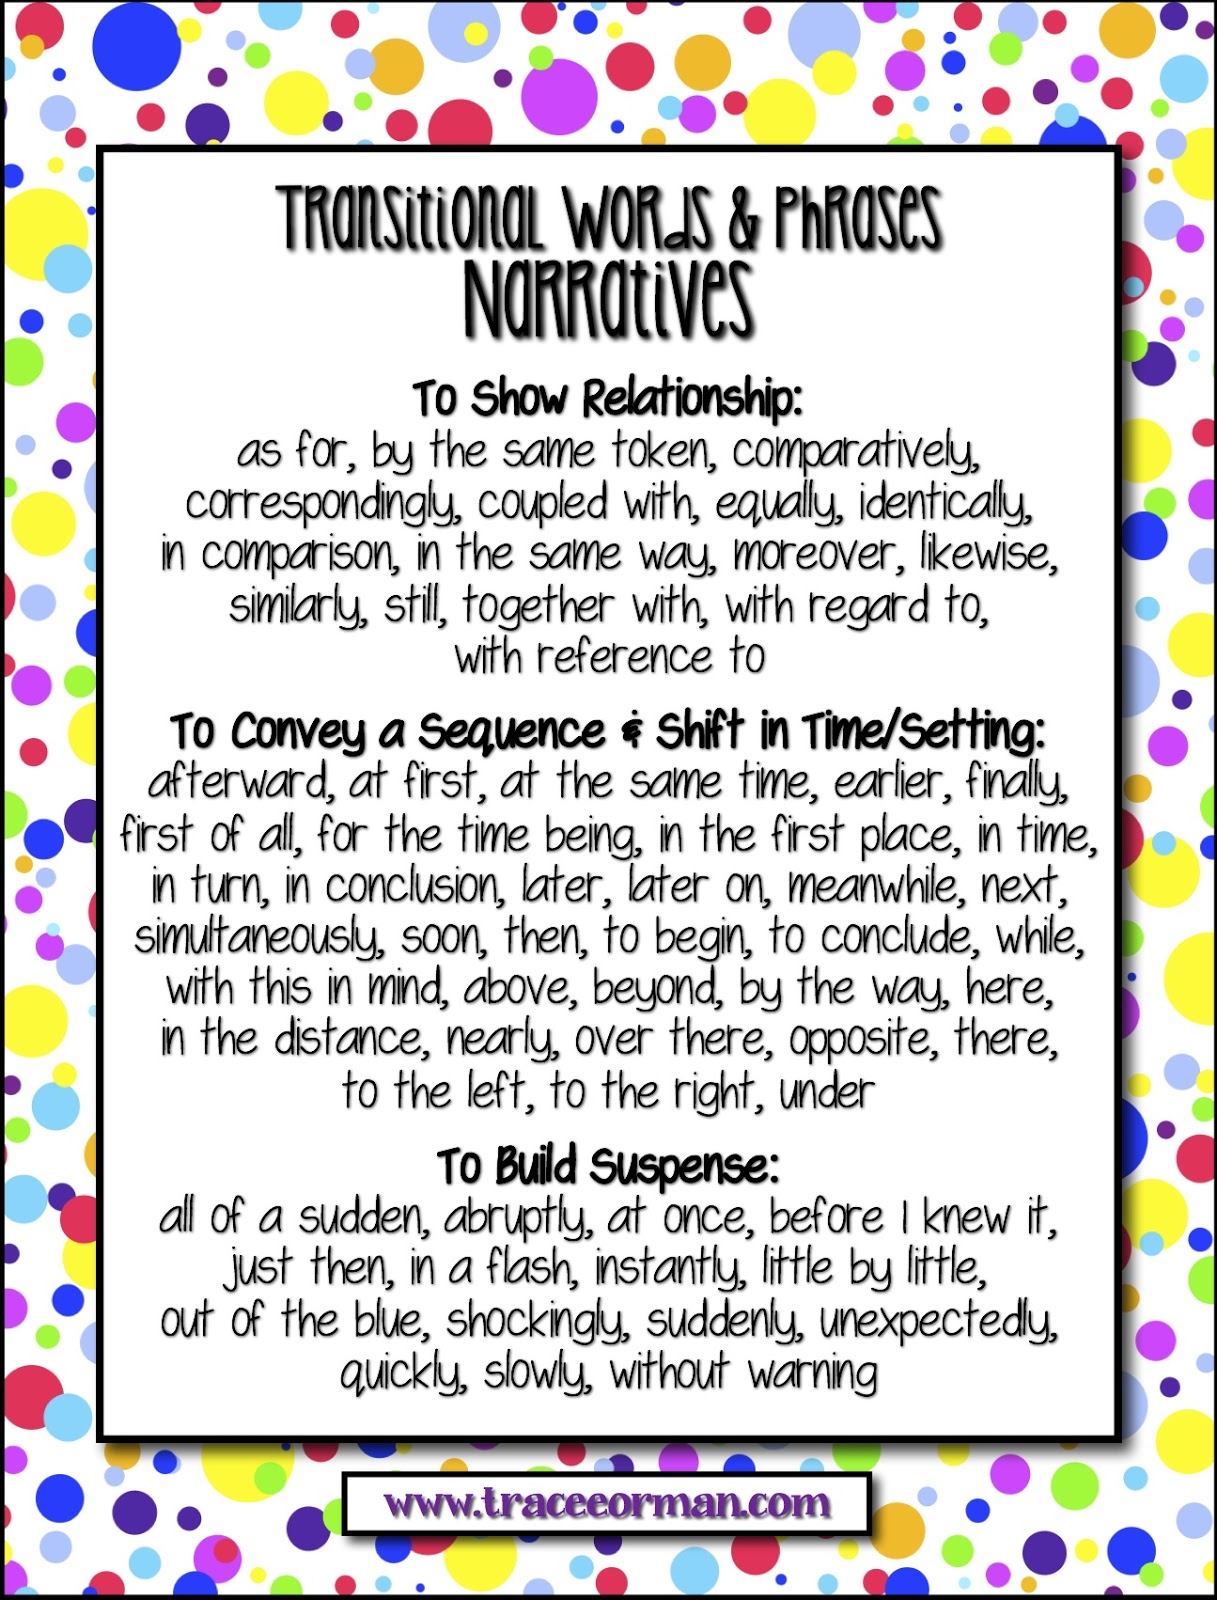 Mrs Ormans Classroom Common Core Tips Using Transitional Words – Transitional Words and Phrases Worksheet